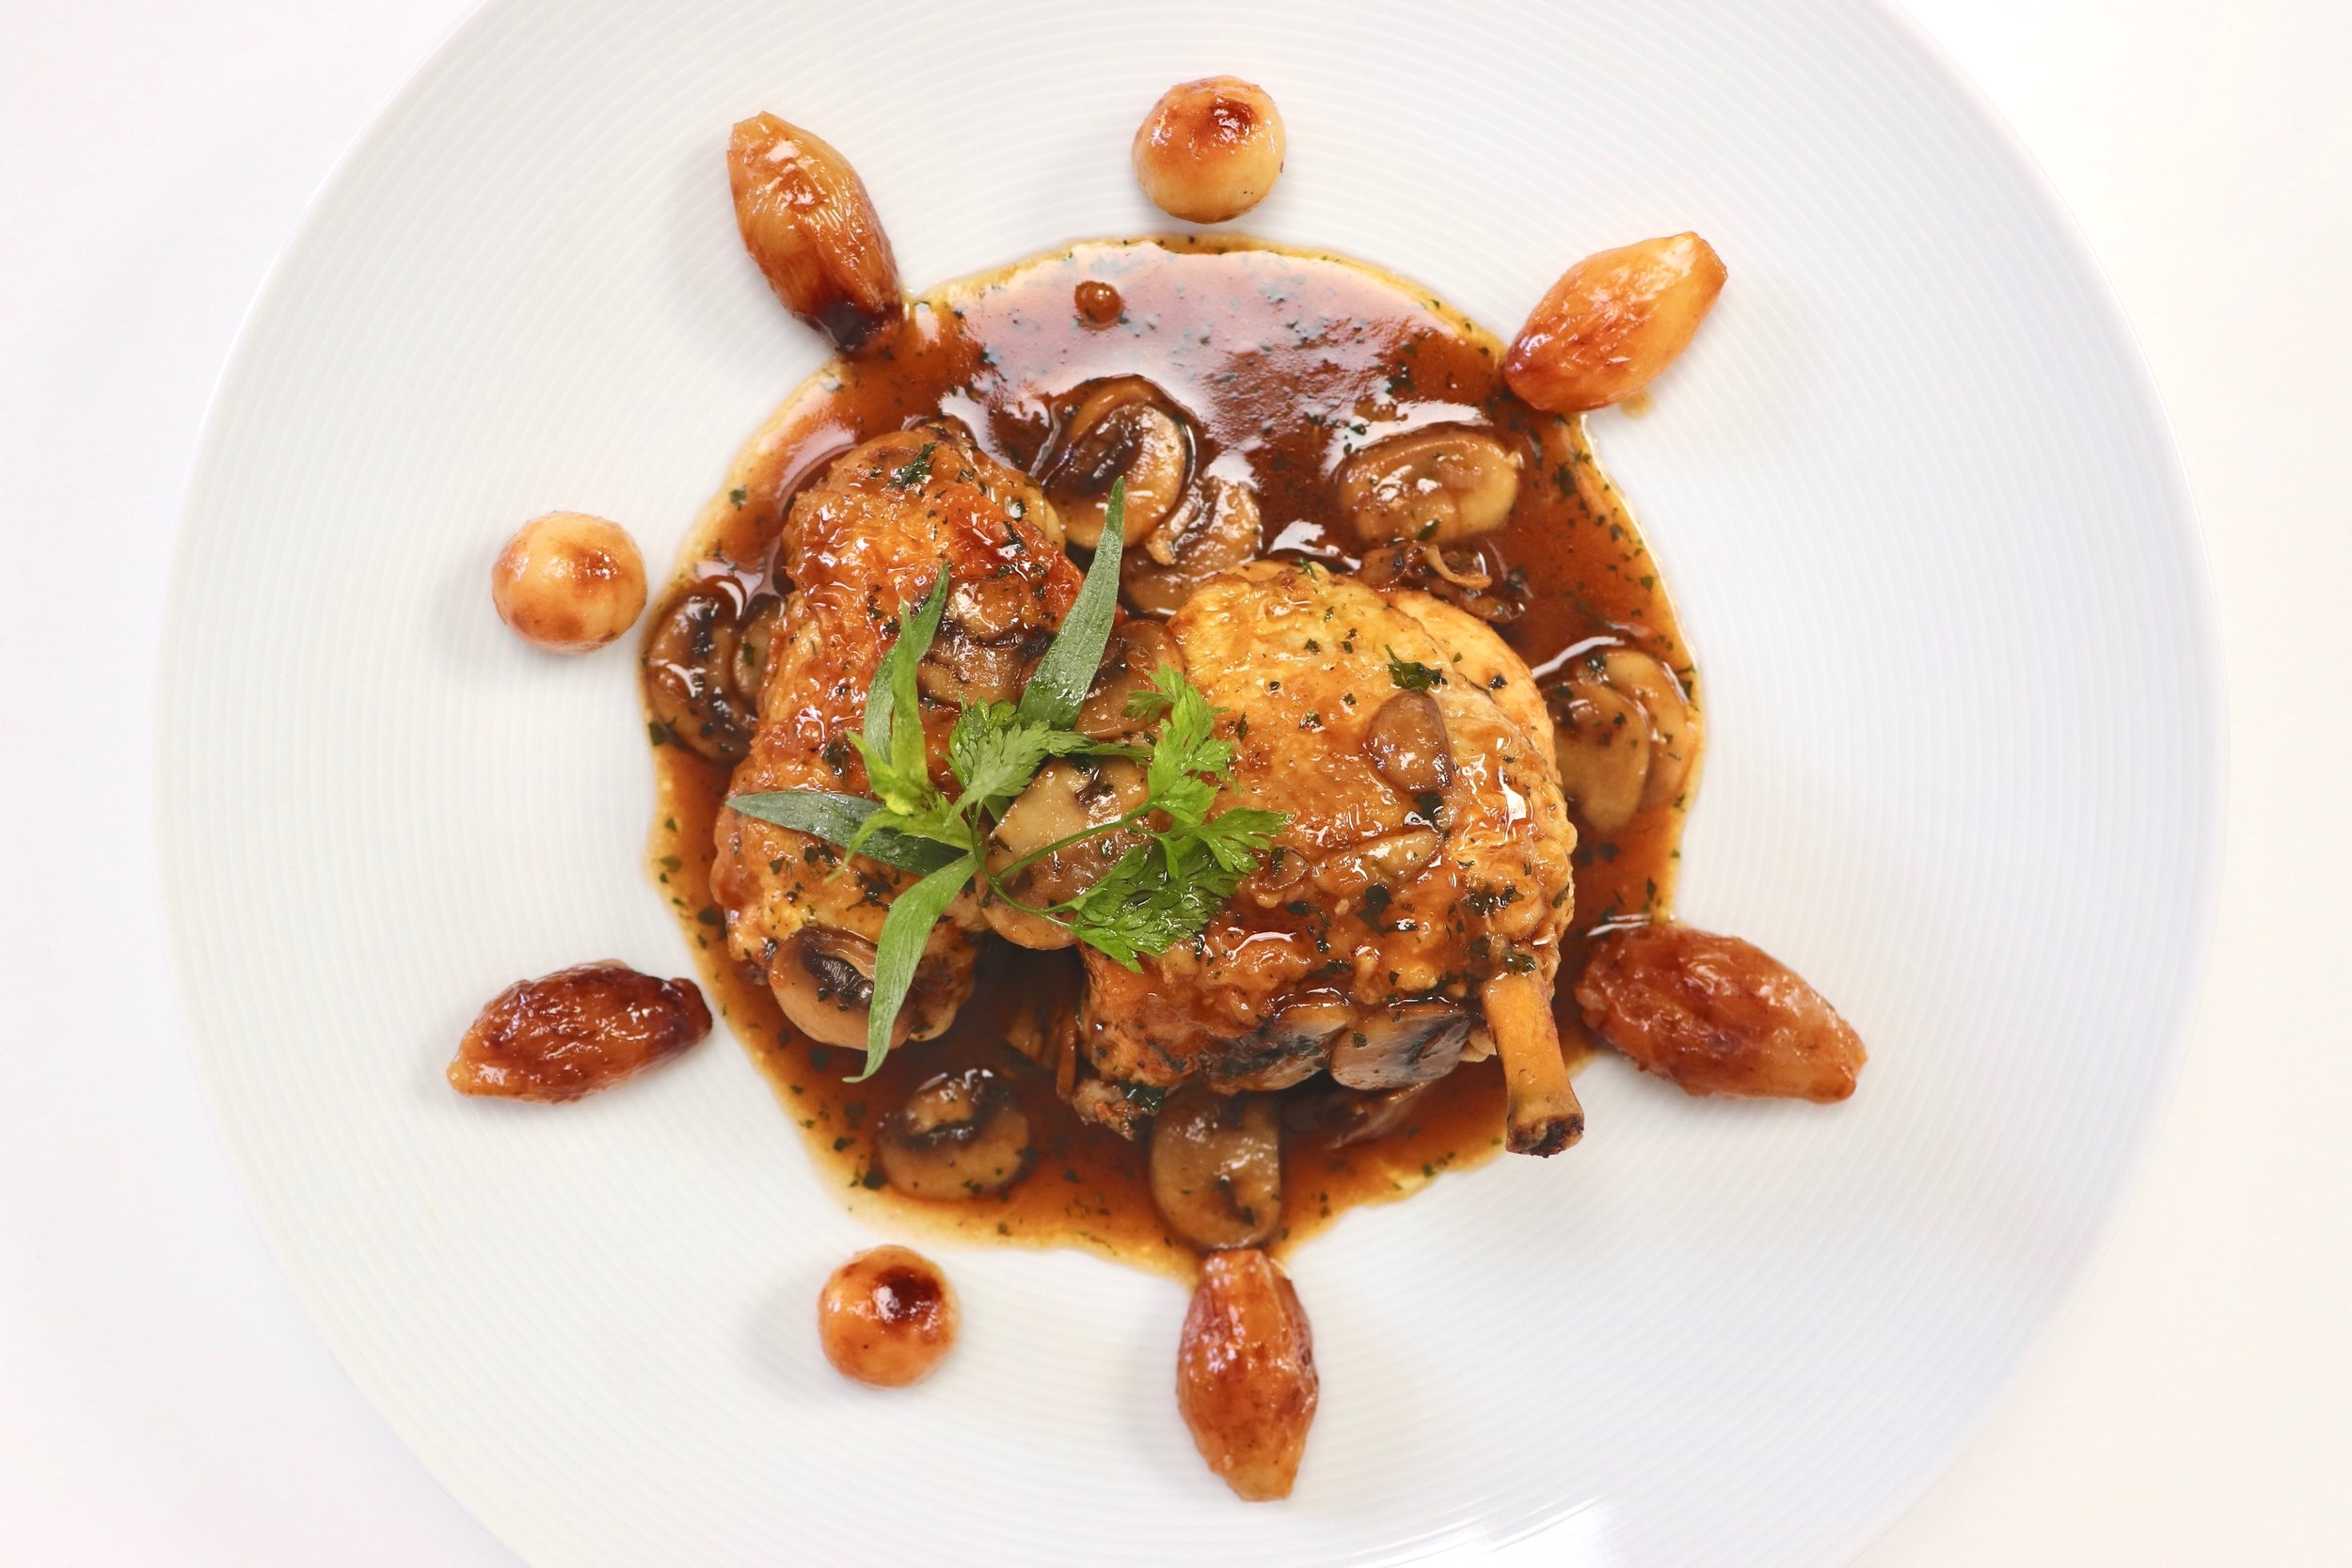 Pan-fried chicken in mushroom, chervil and tarragon sauce